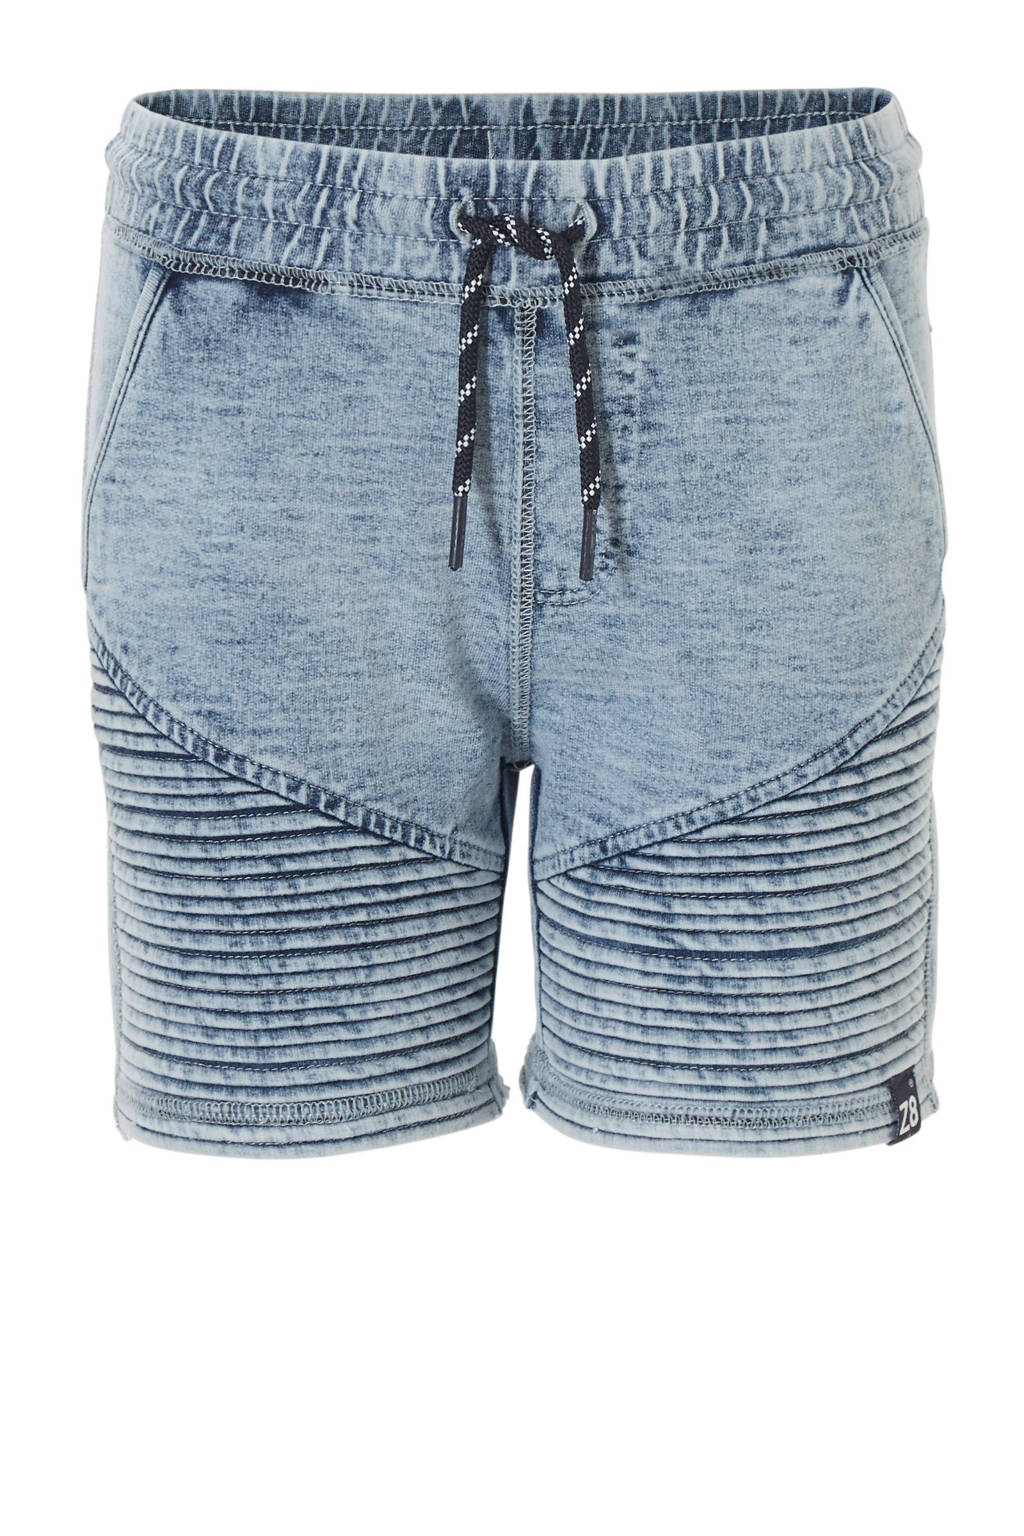 Z8 sweatshort Pax light denim, Light denim